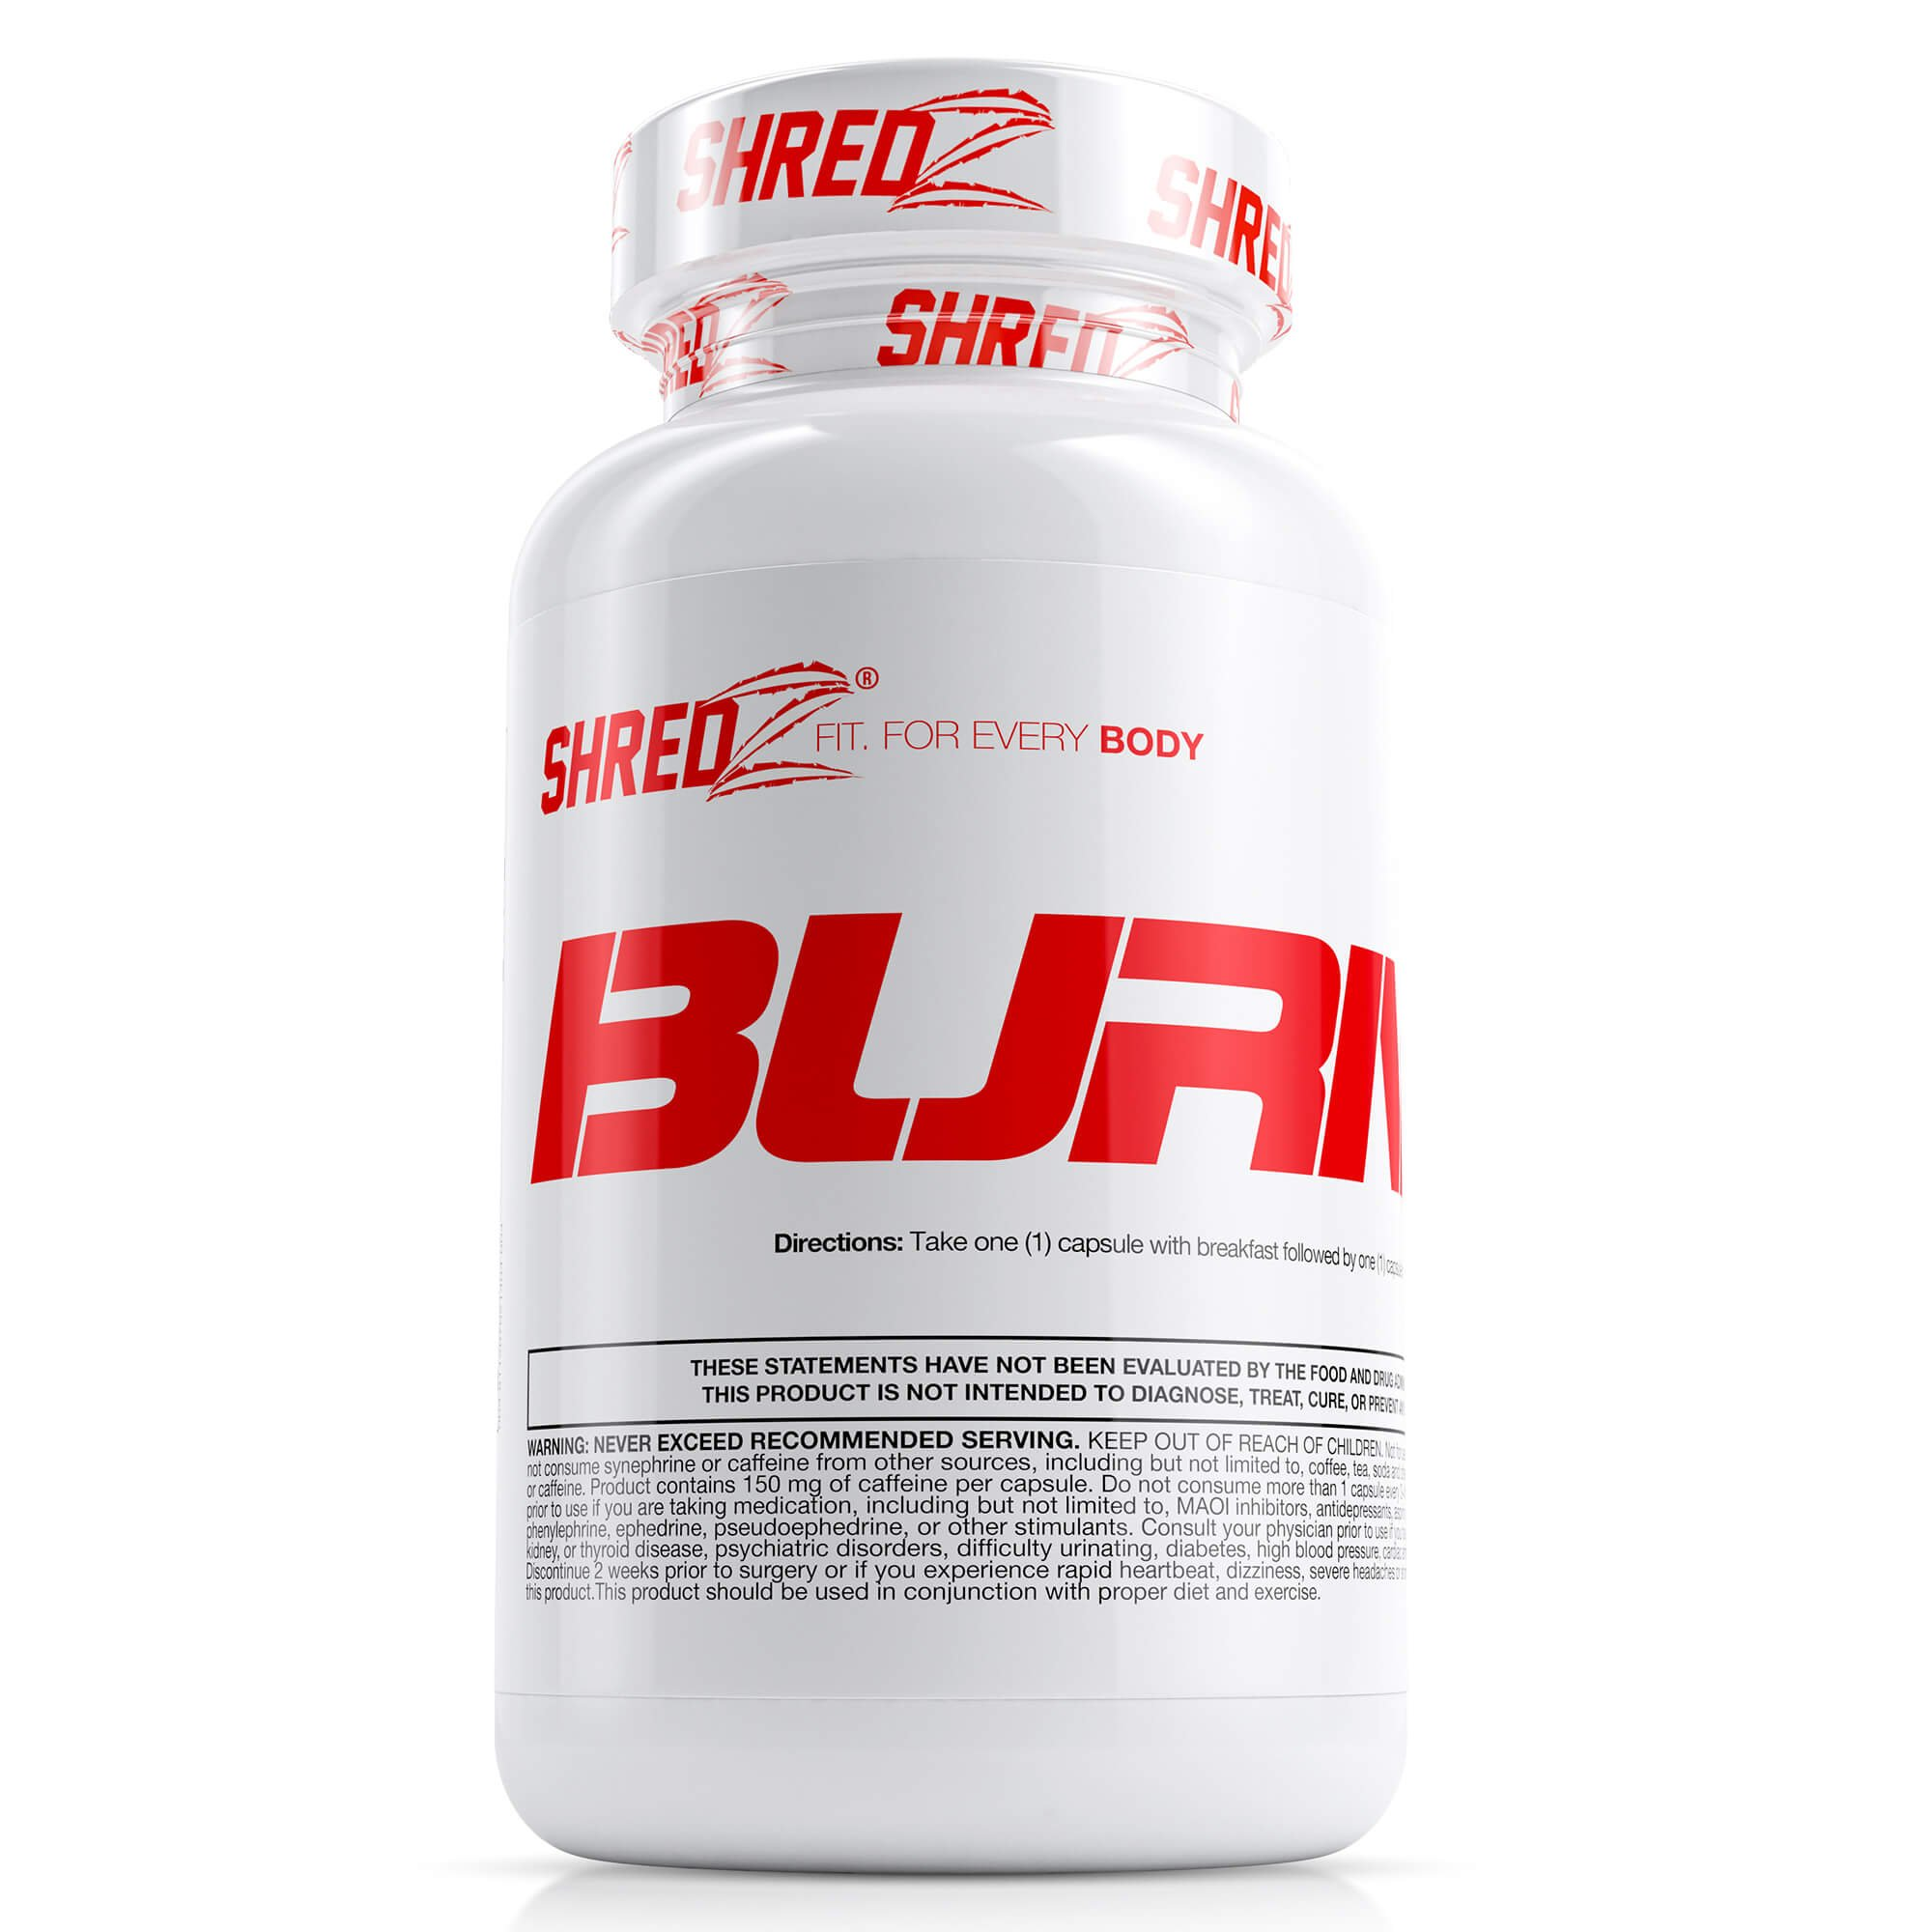 SHREDZ Fat Burner Supplement Pill for Men, Lose Weight, Increase Energy, Boost Metabolism, Best Way to Shed Pounds - 60 Capsules (30 Day Supply)